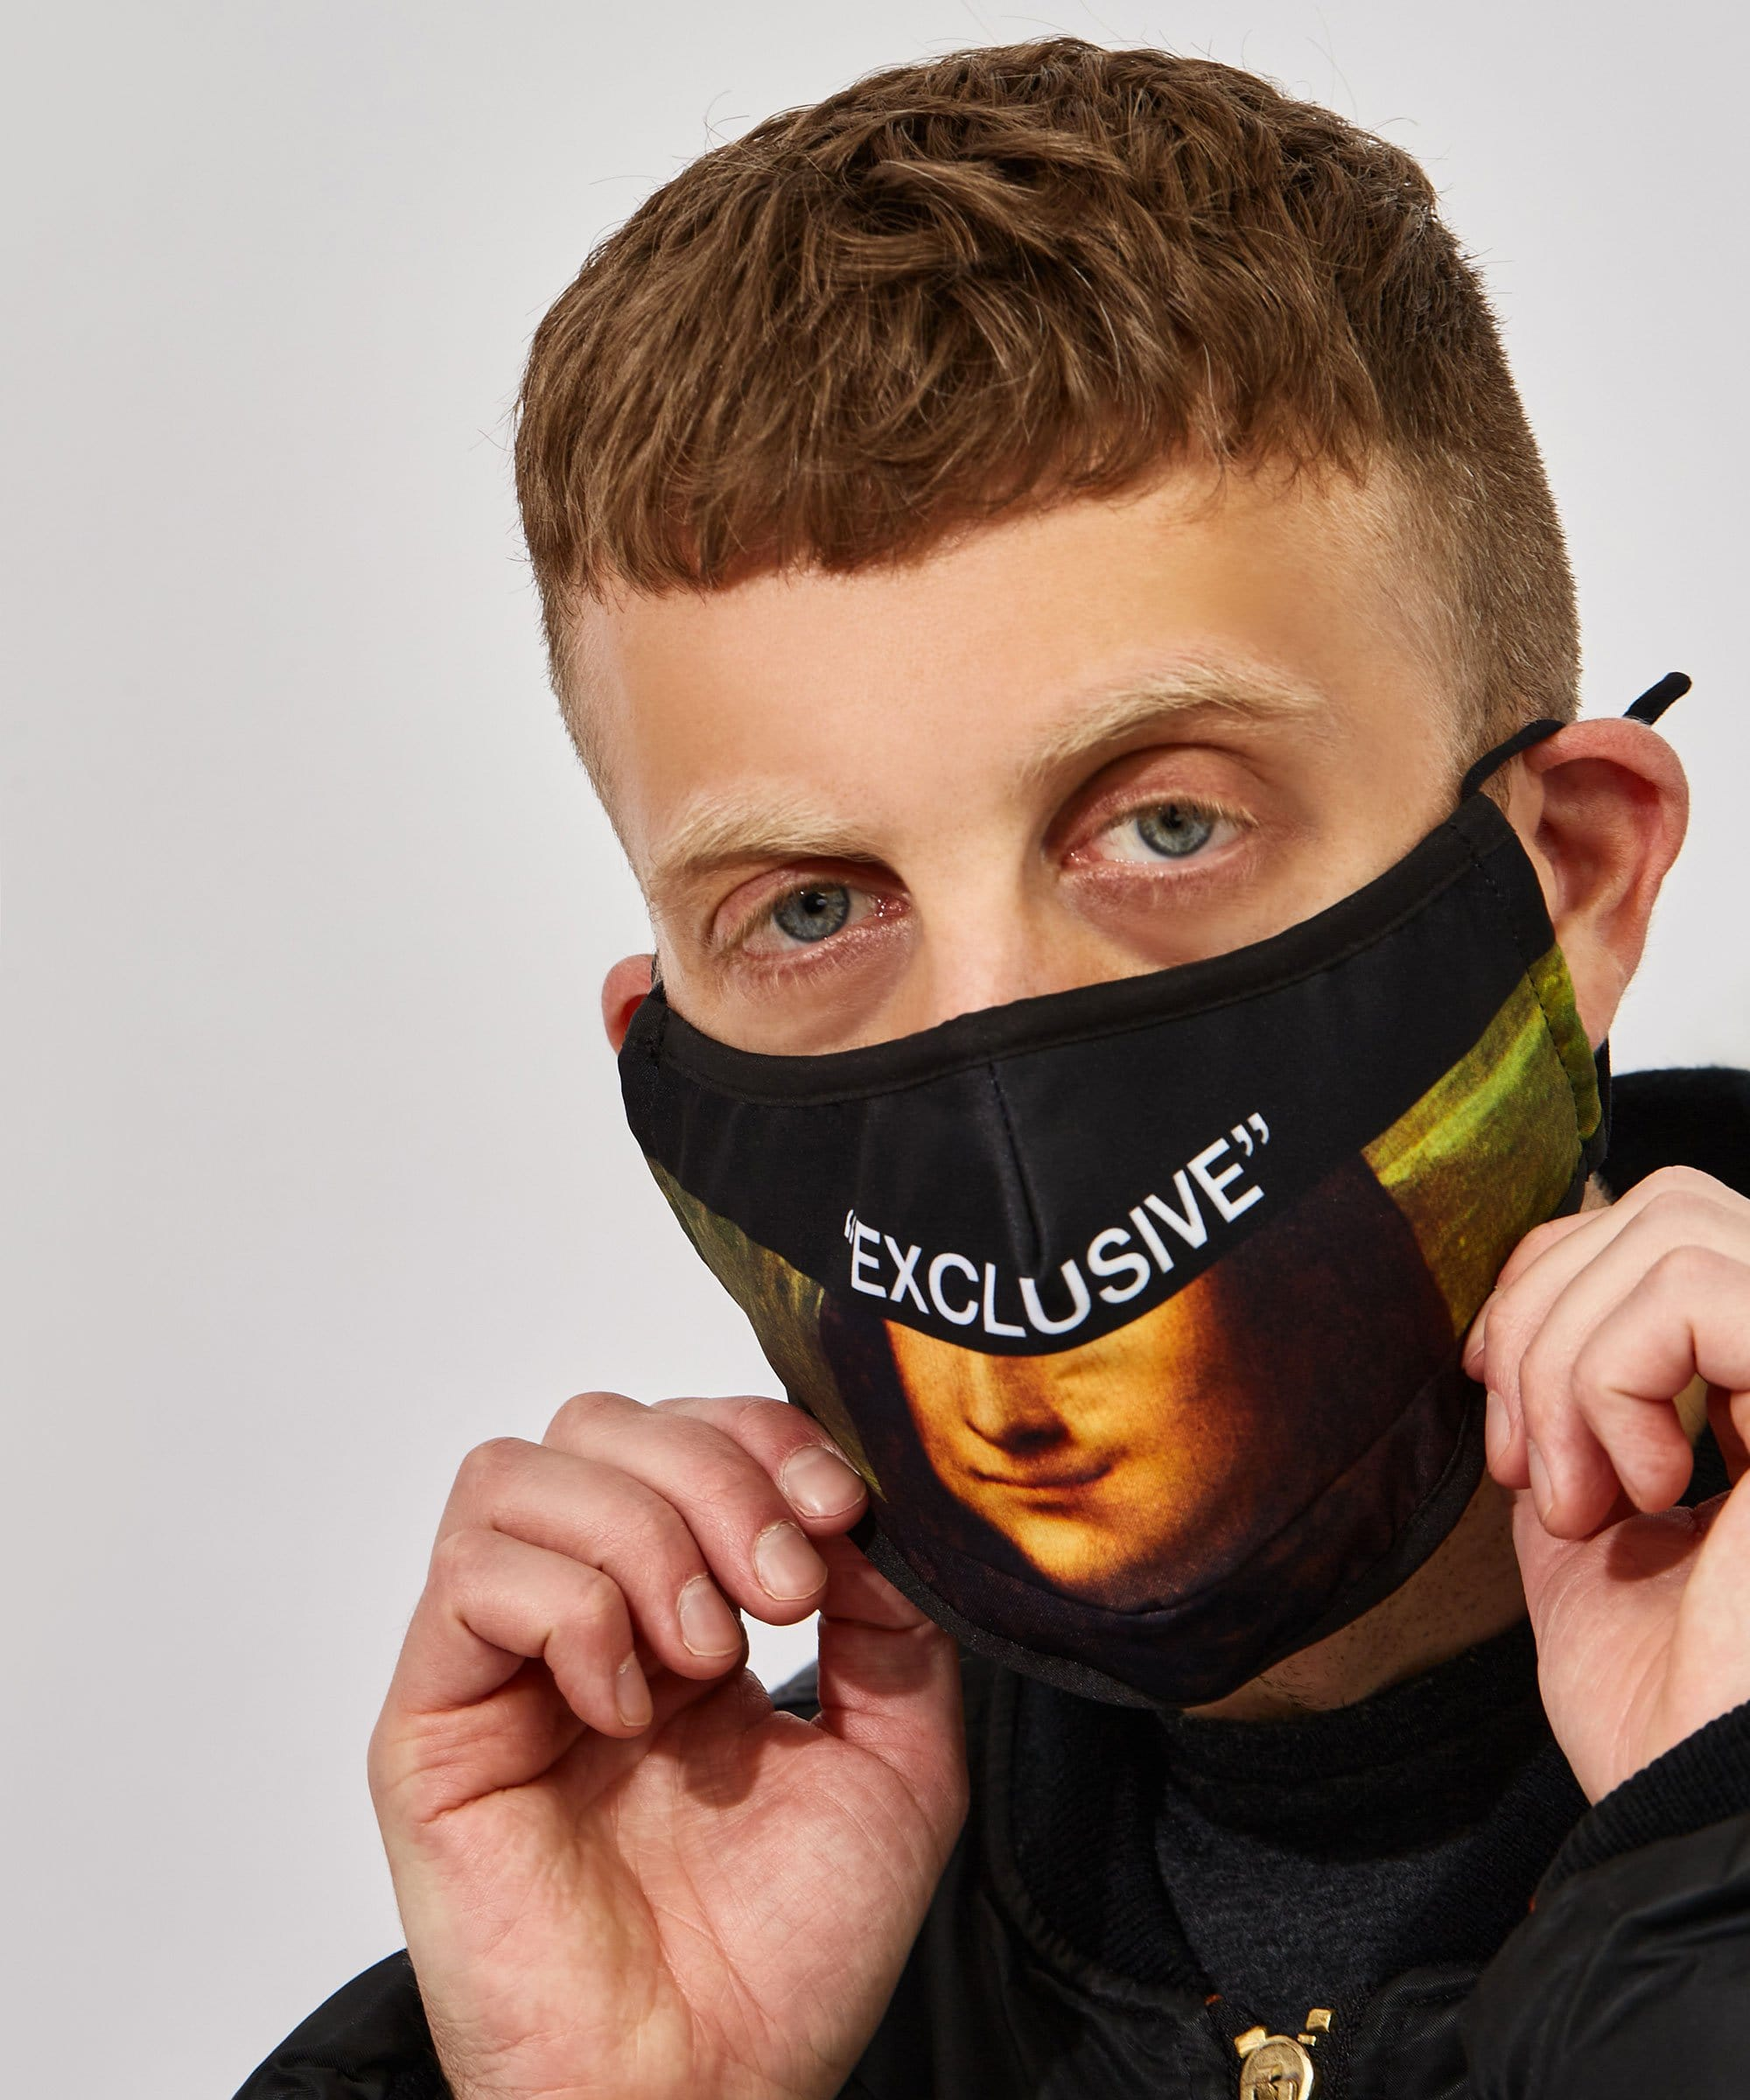 EXCLUSIVE FACE MASK